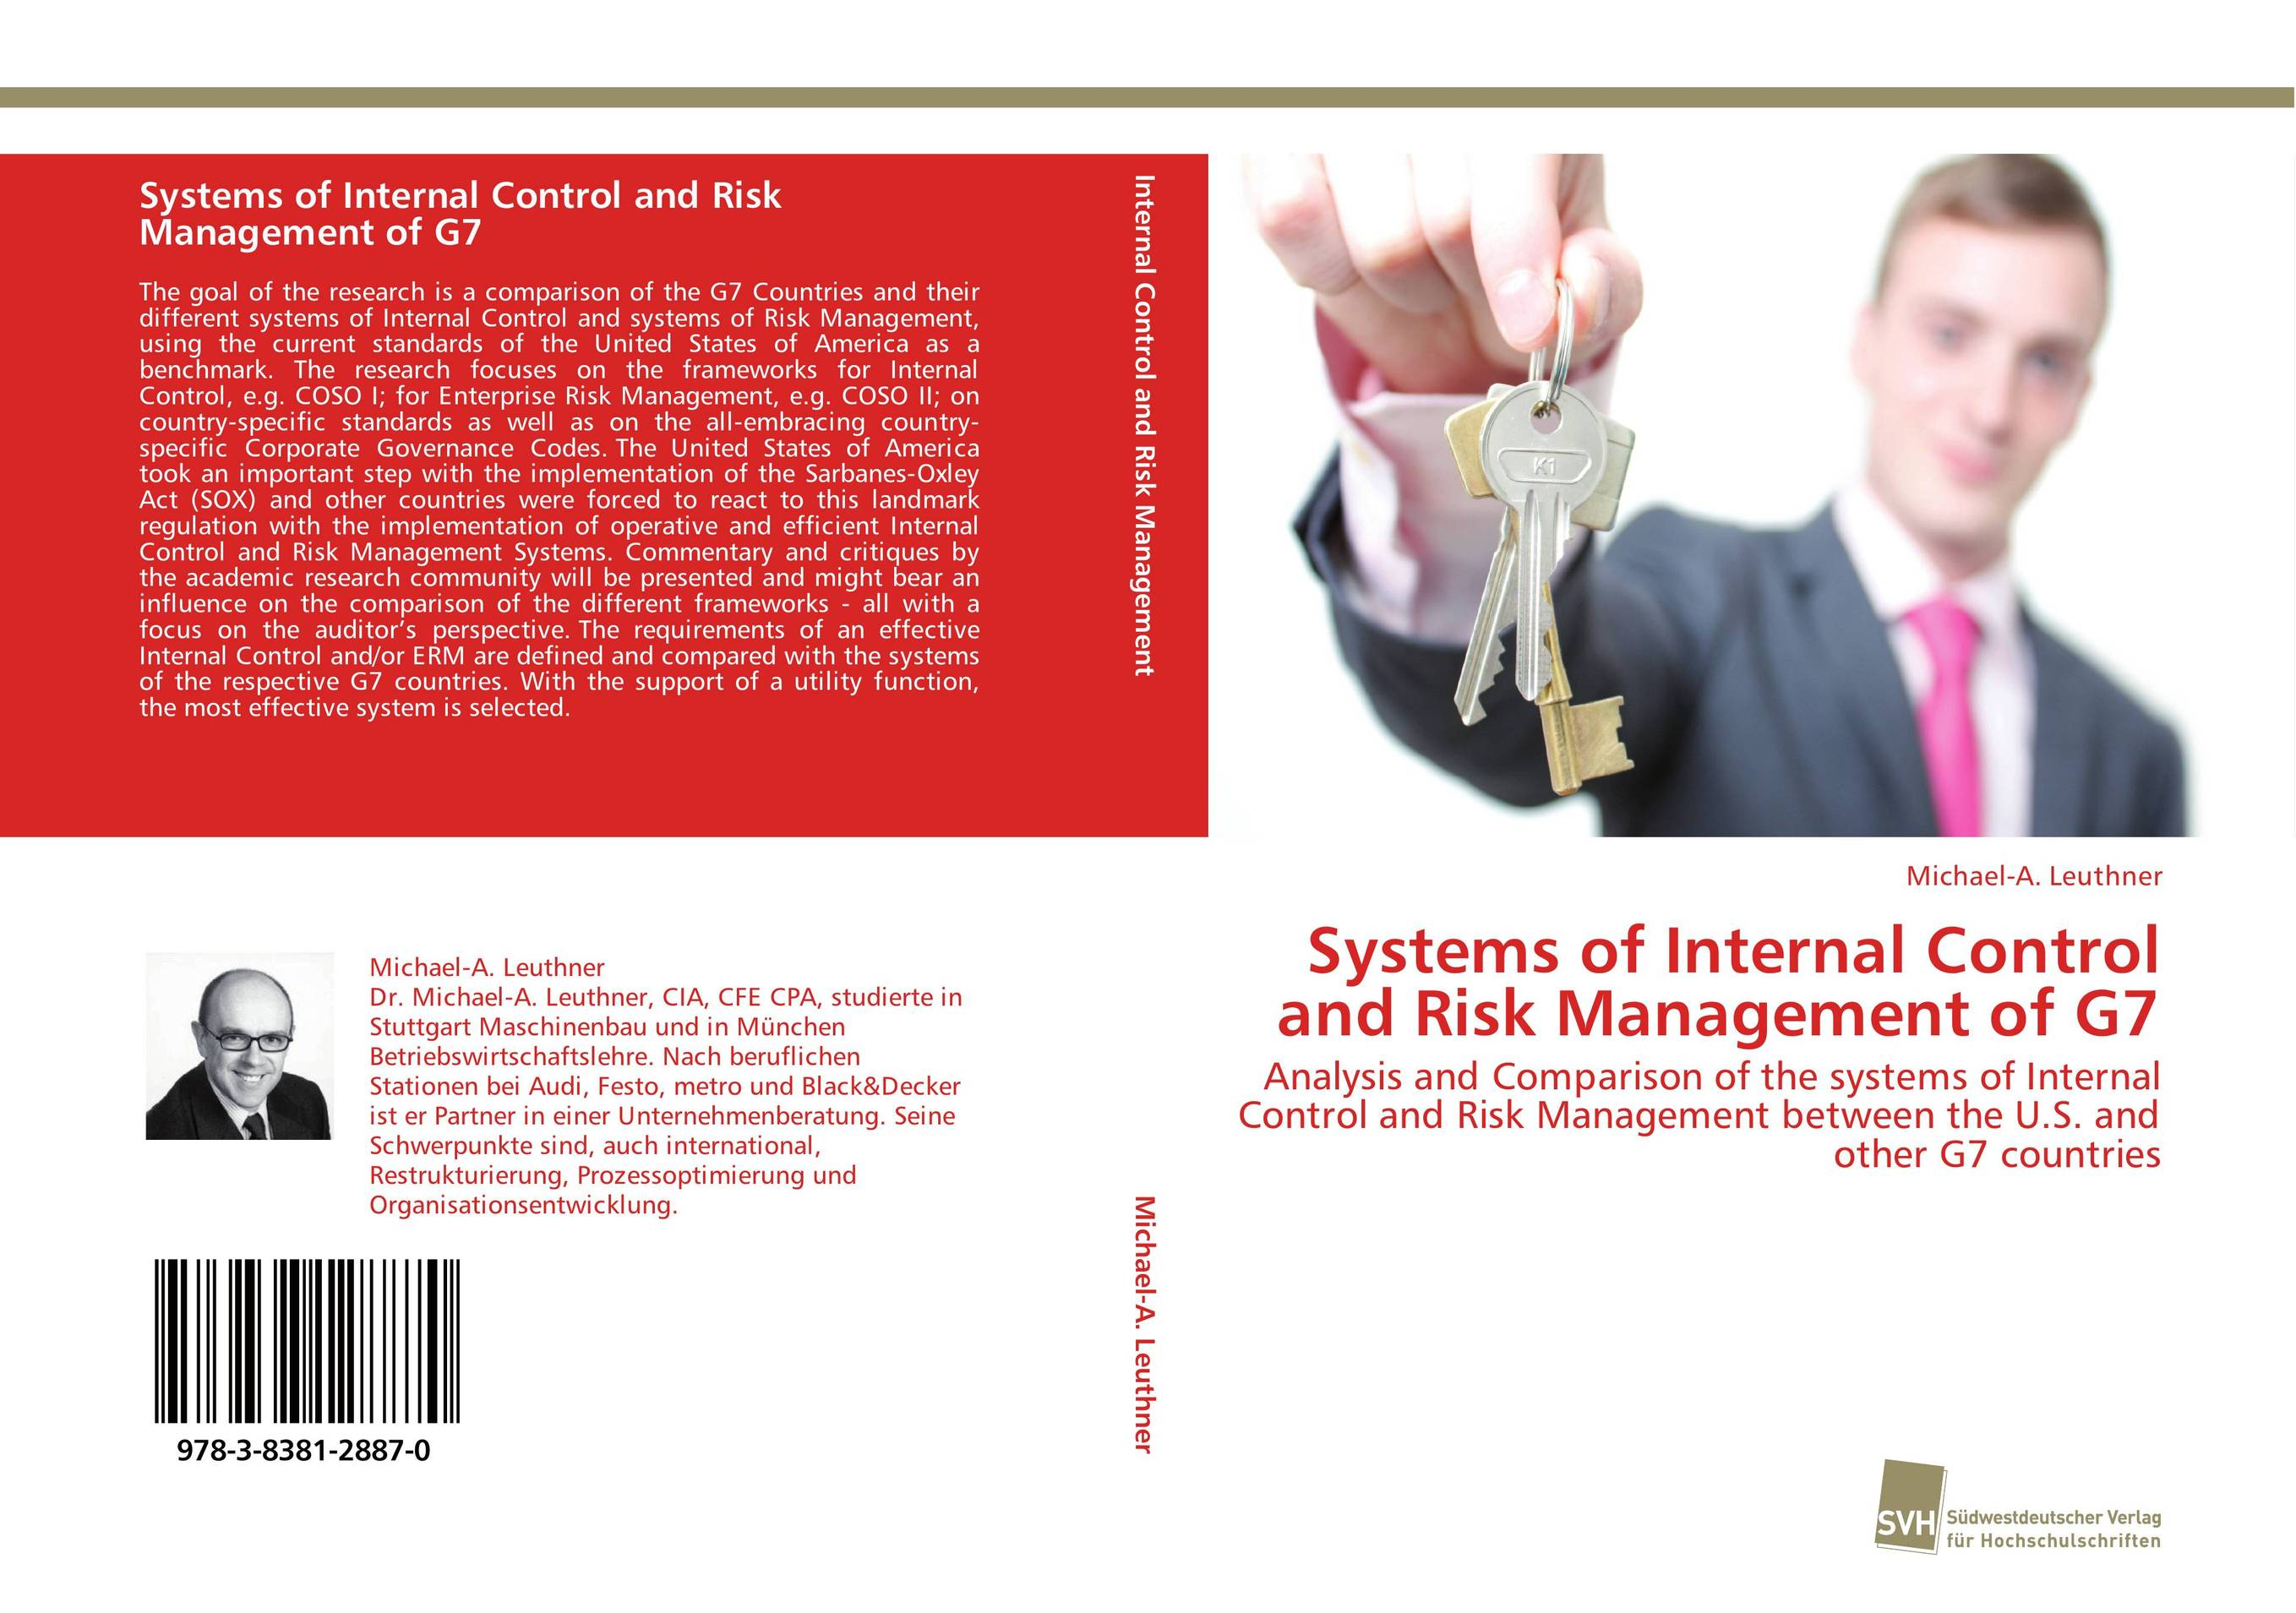 Systems of Internal Control and Risk Management of G7 sim segal corporate value of enterprise risk management the next step in business management